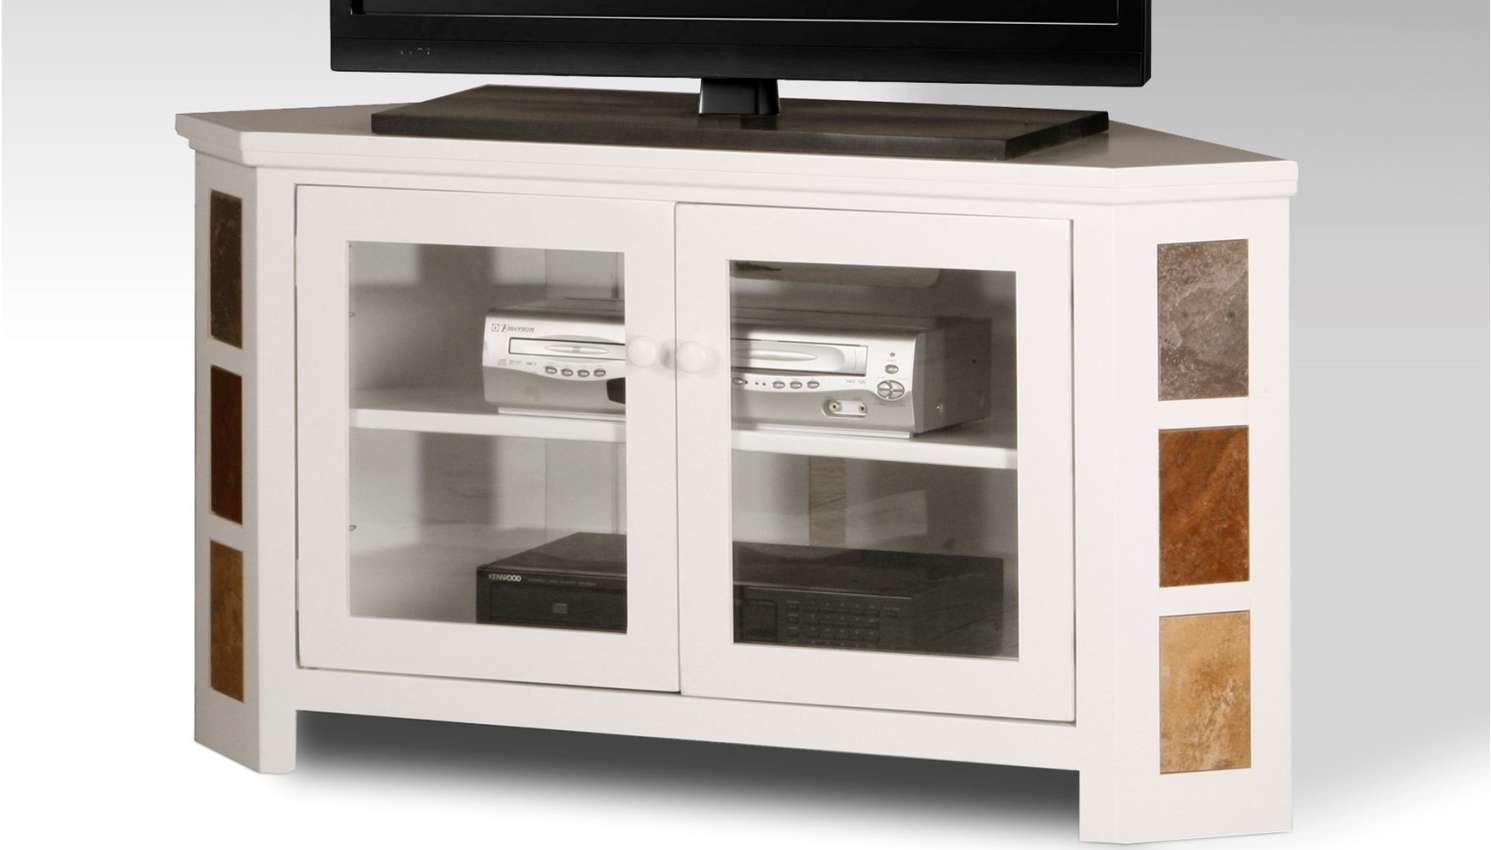 Tv : Gratify Tv Cabinets With Glass Doors Uk Unforeseen Black Regarding Black Corner Tv Cabinets With Glass Doors (View 20 of 20)